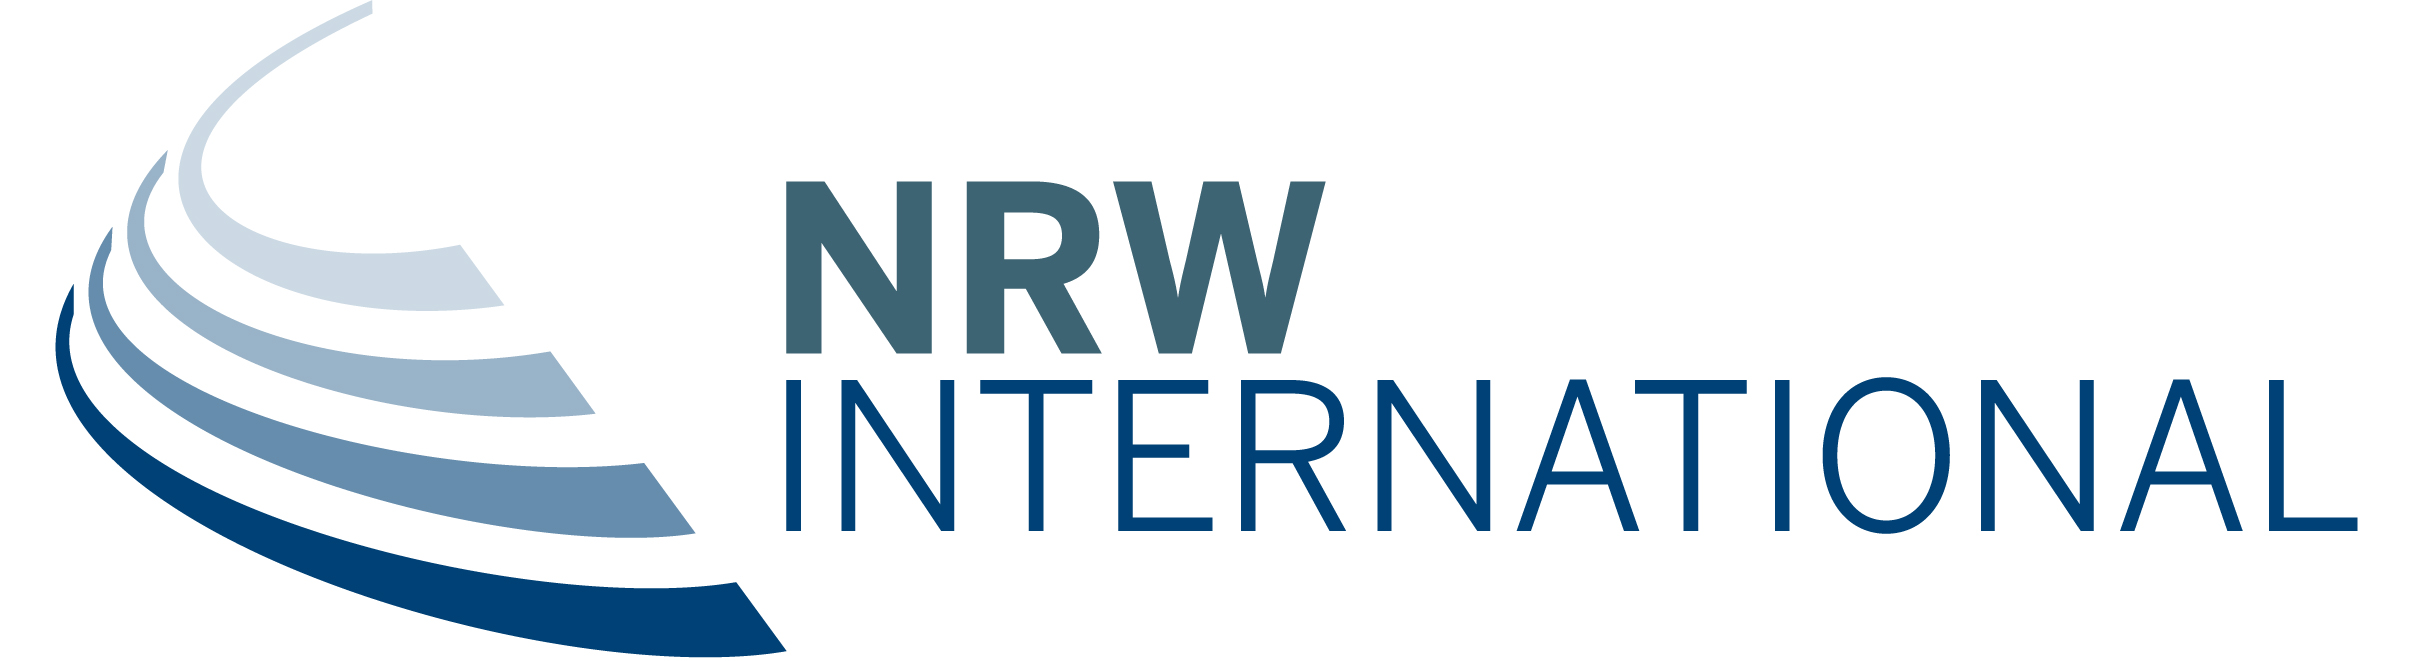 NRW-International_4c